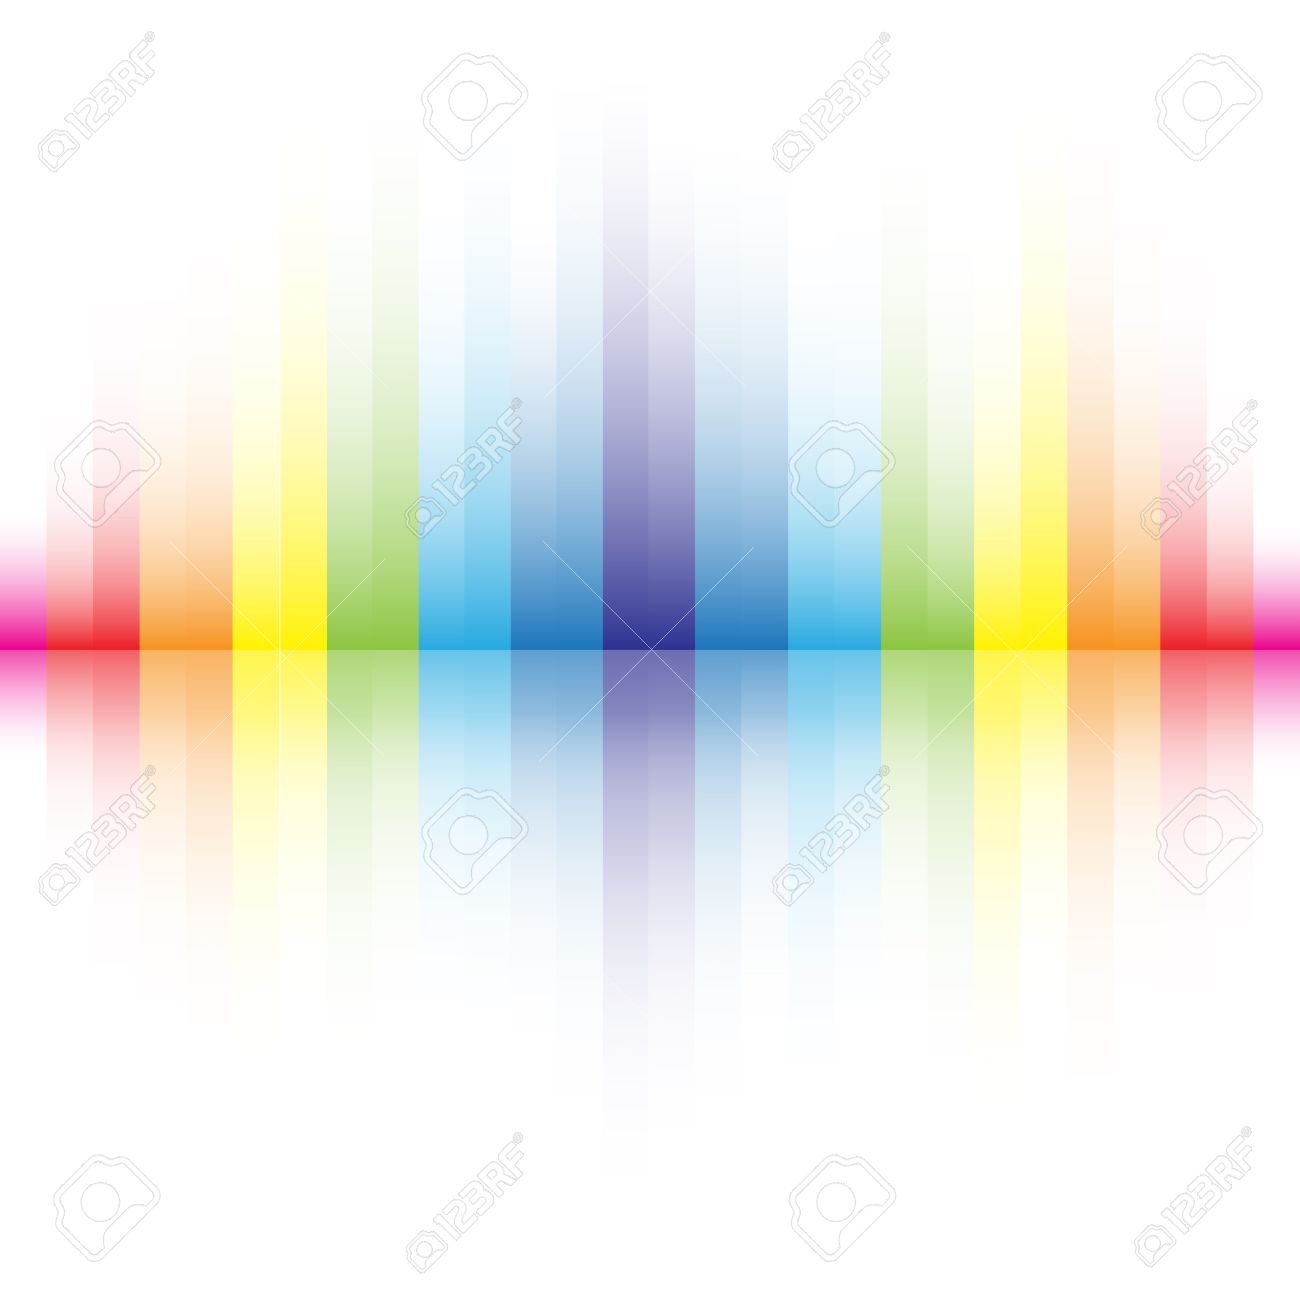 abstract rainbow colors background stock vector 8826295 - Rainbow Color